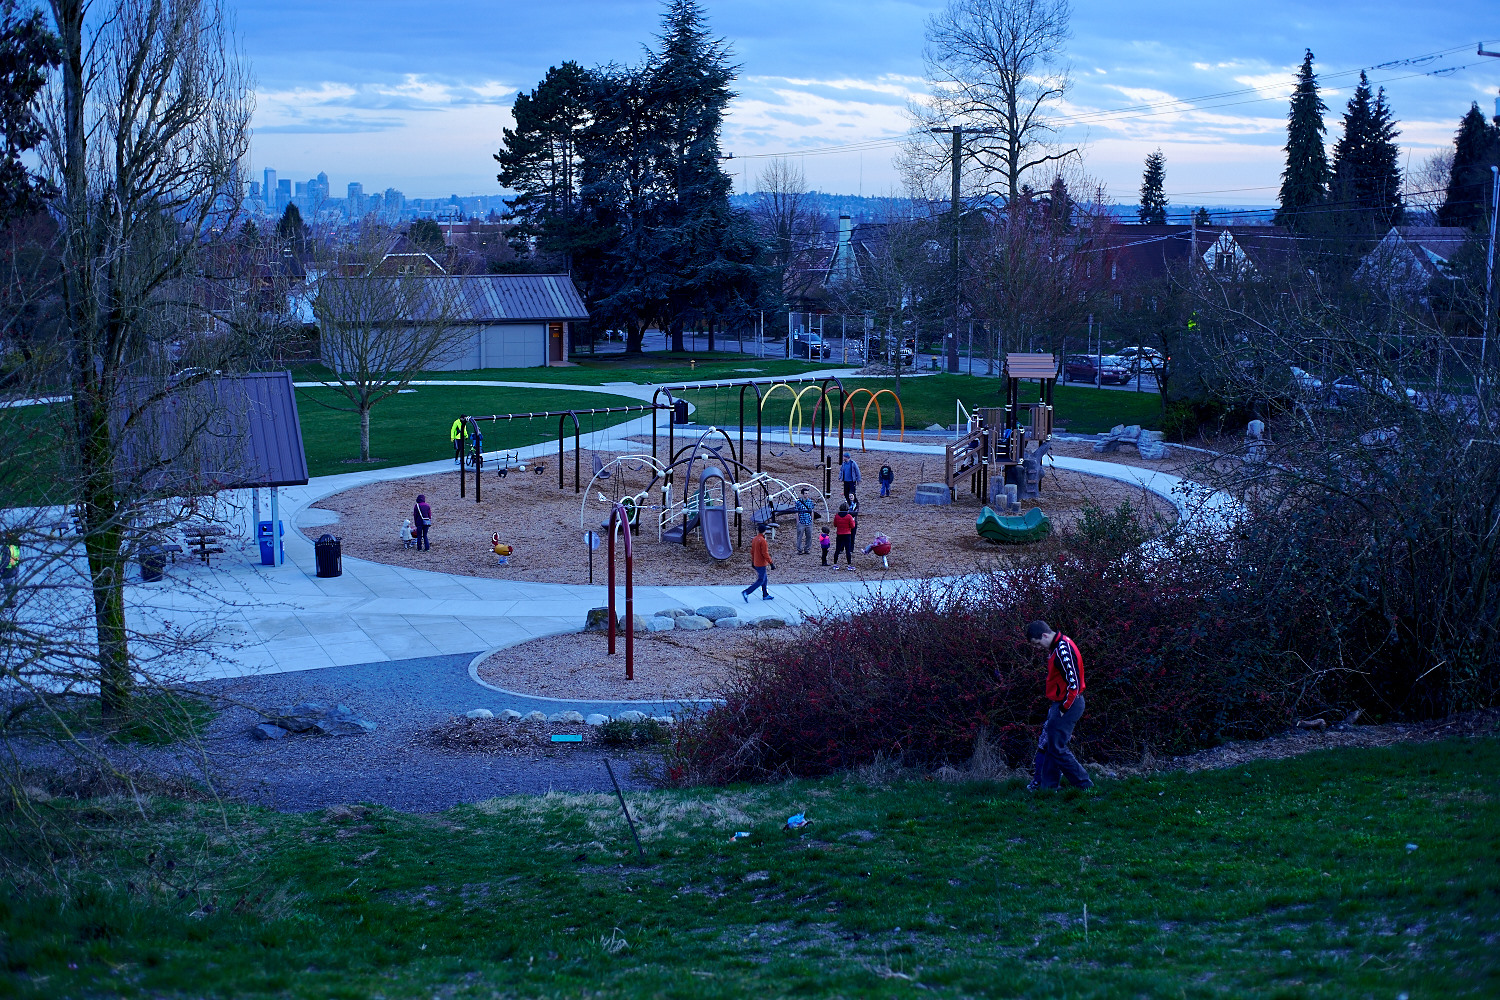 It's nice they turn the water reservoir into children's playground, places for sports, and a dog park.